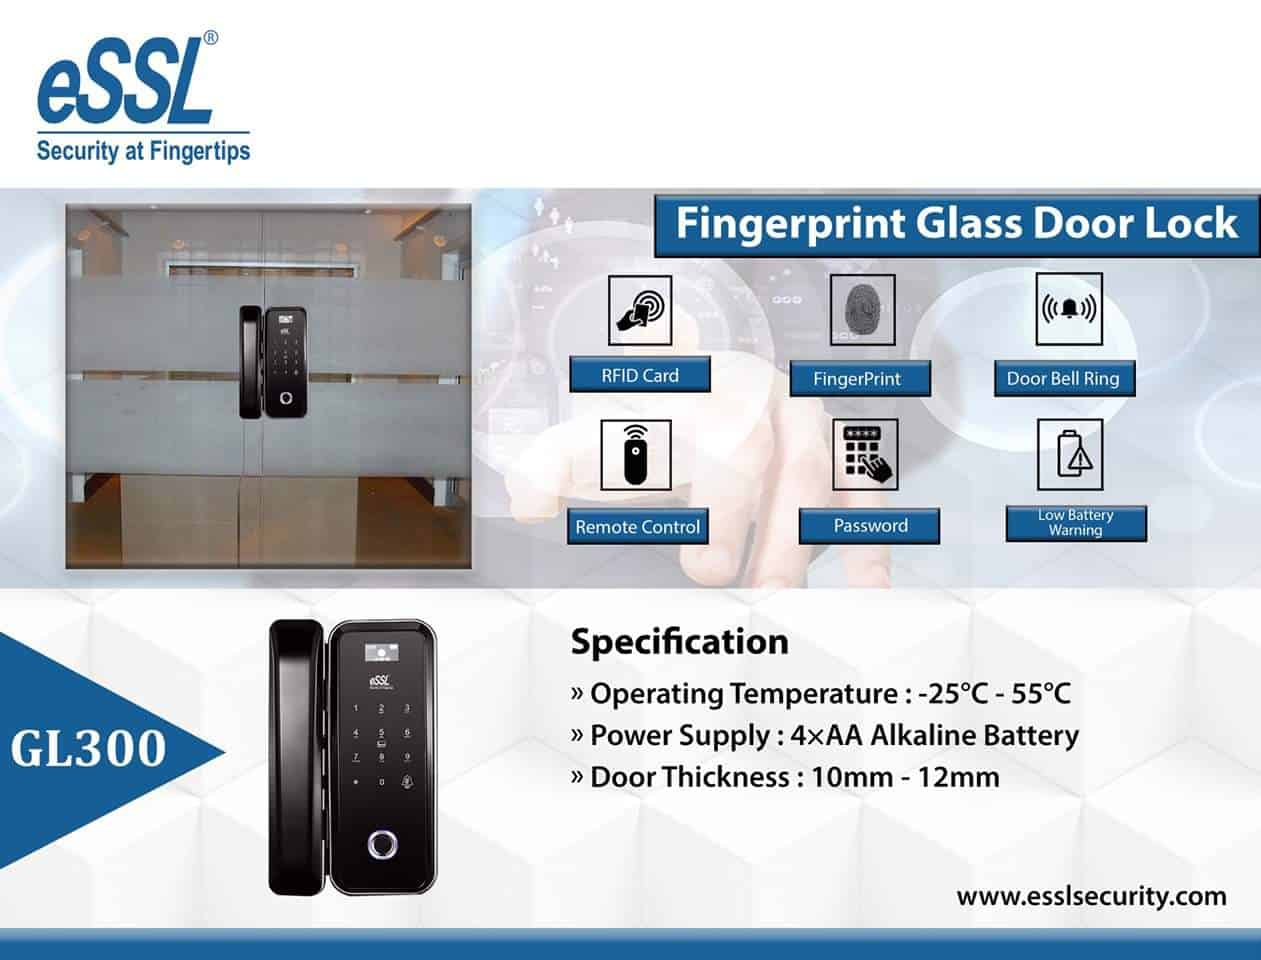 Features eSSL Fingerprint Door Lock System GL300